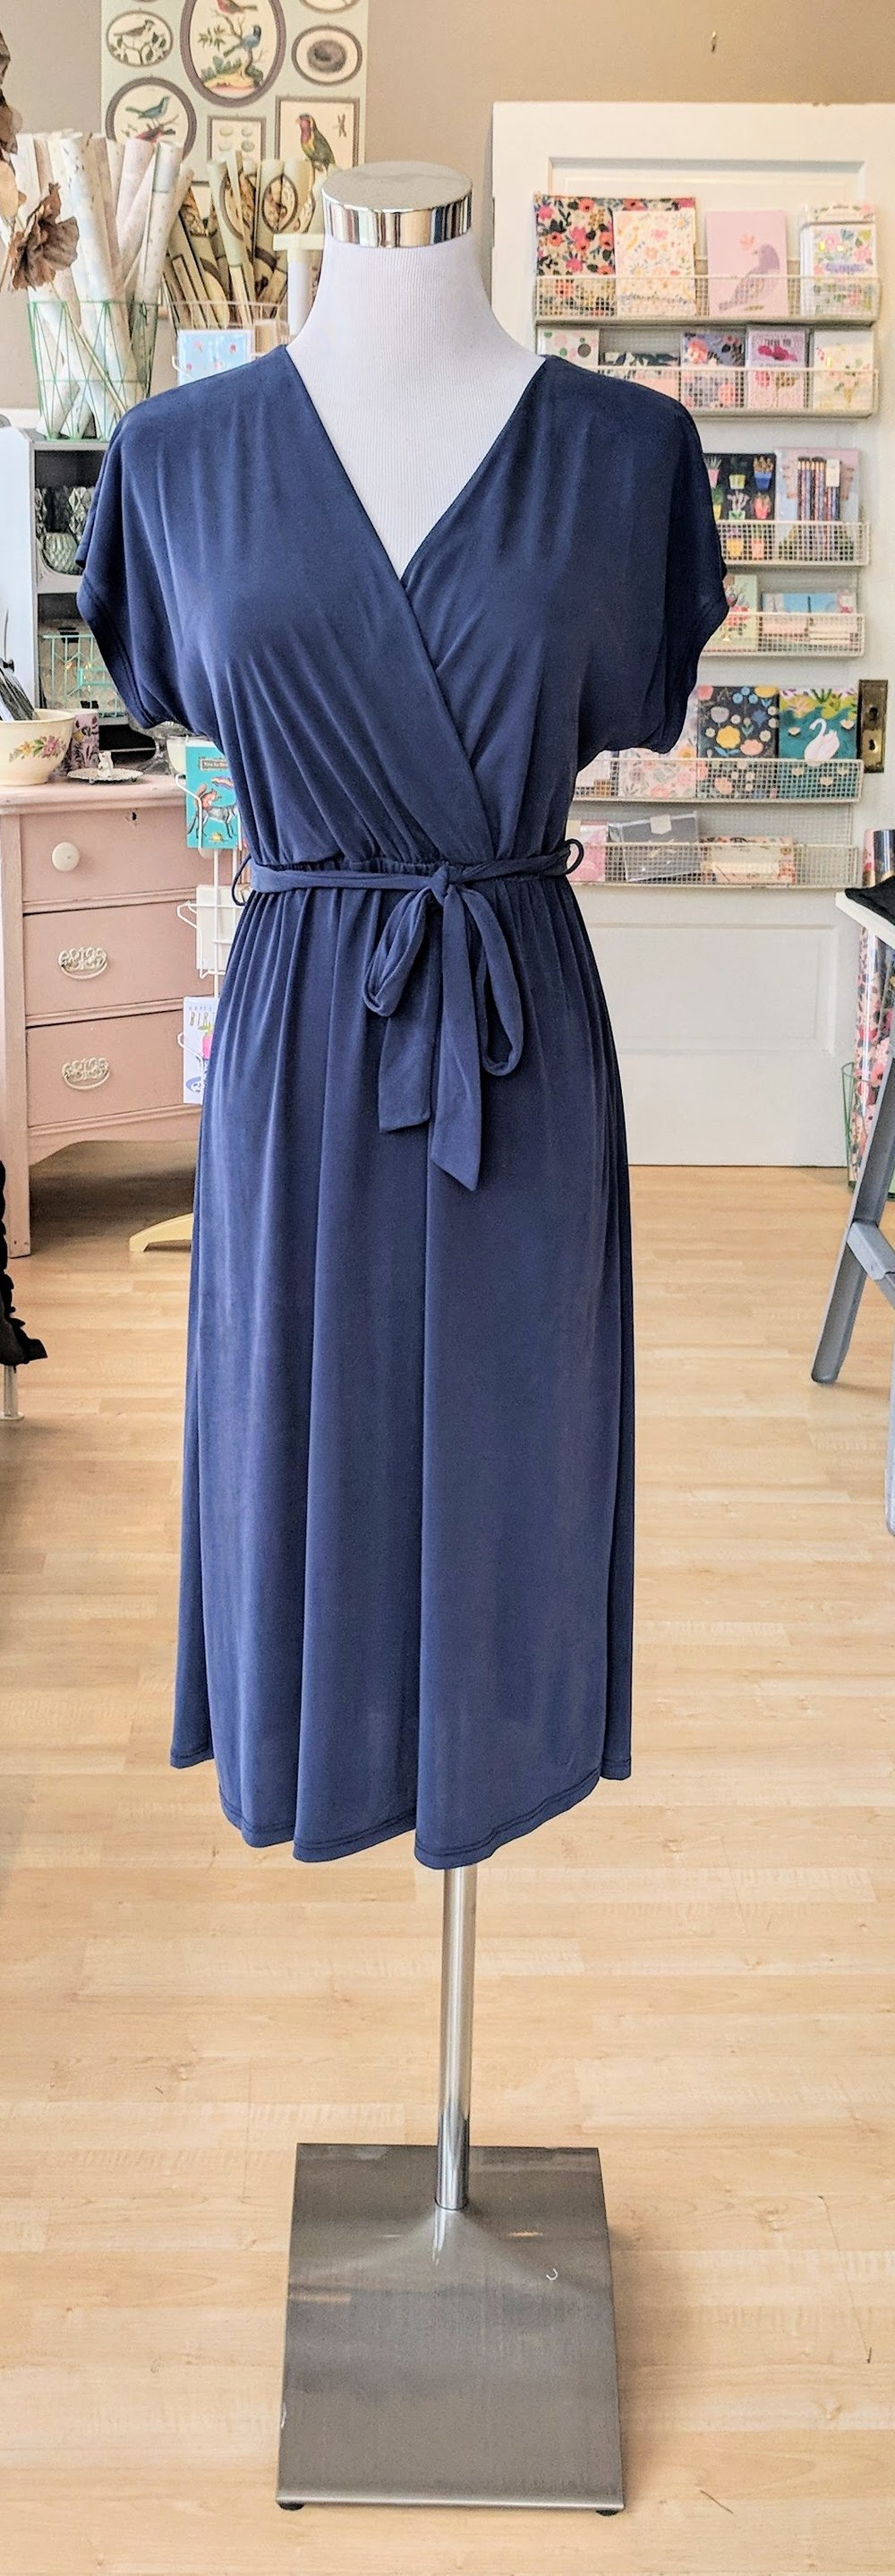 Dusty Navy Midi Wrap Dress $48